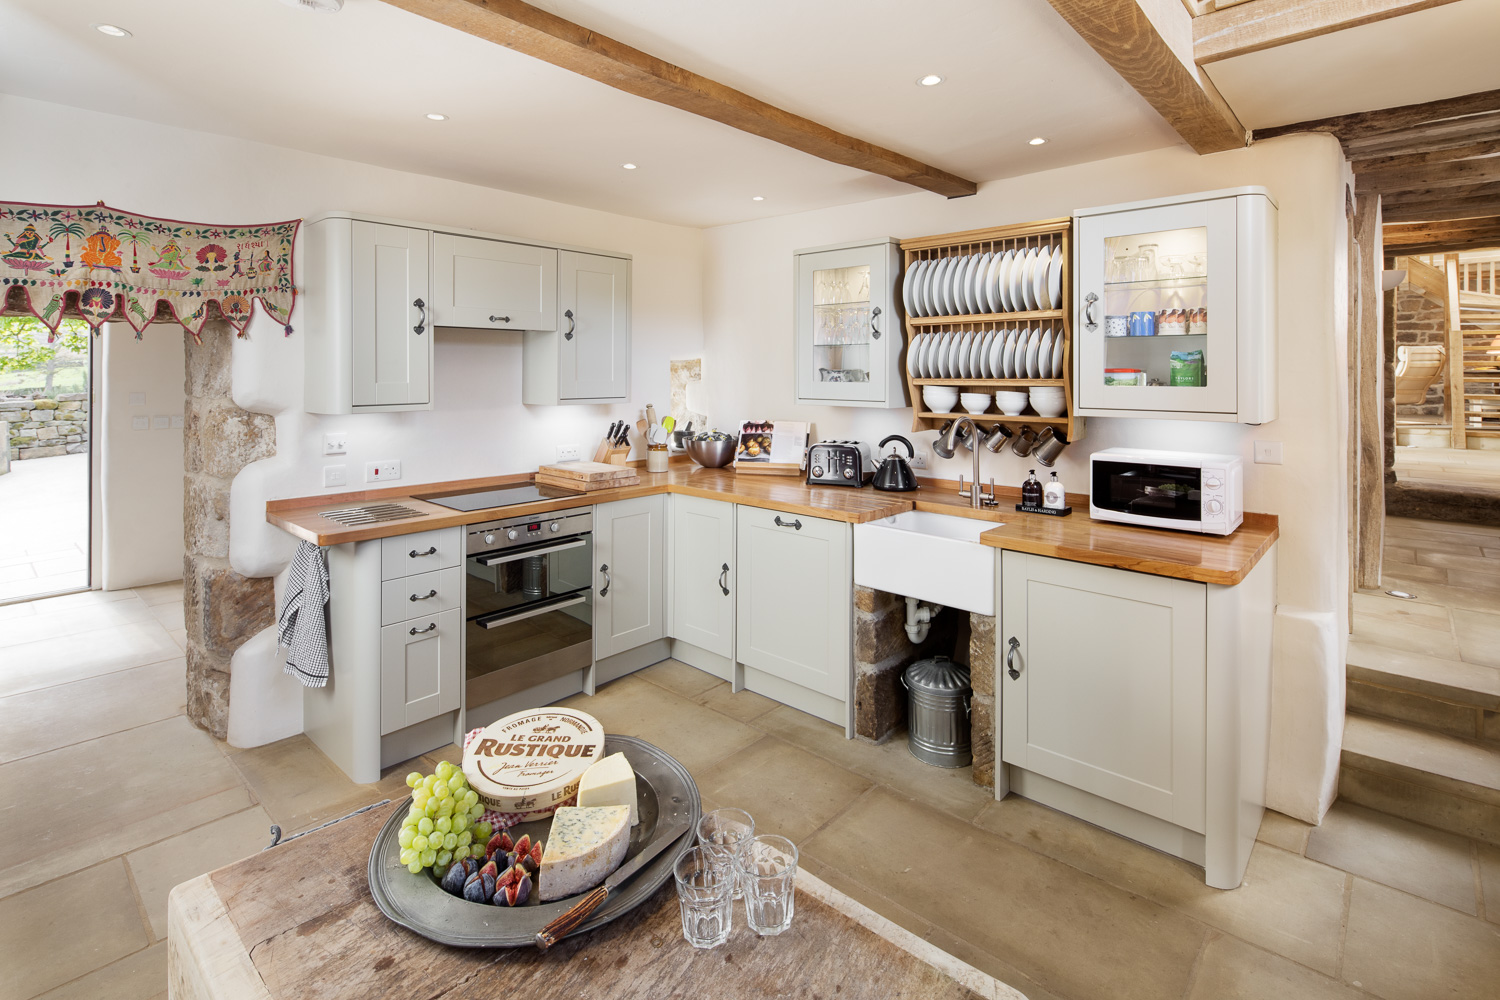 Fully equipped kitchen North York Moors Whitby luxury holiday cottage